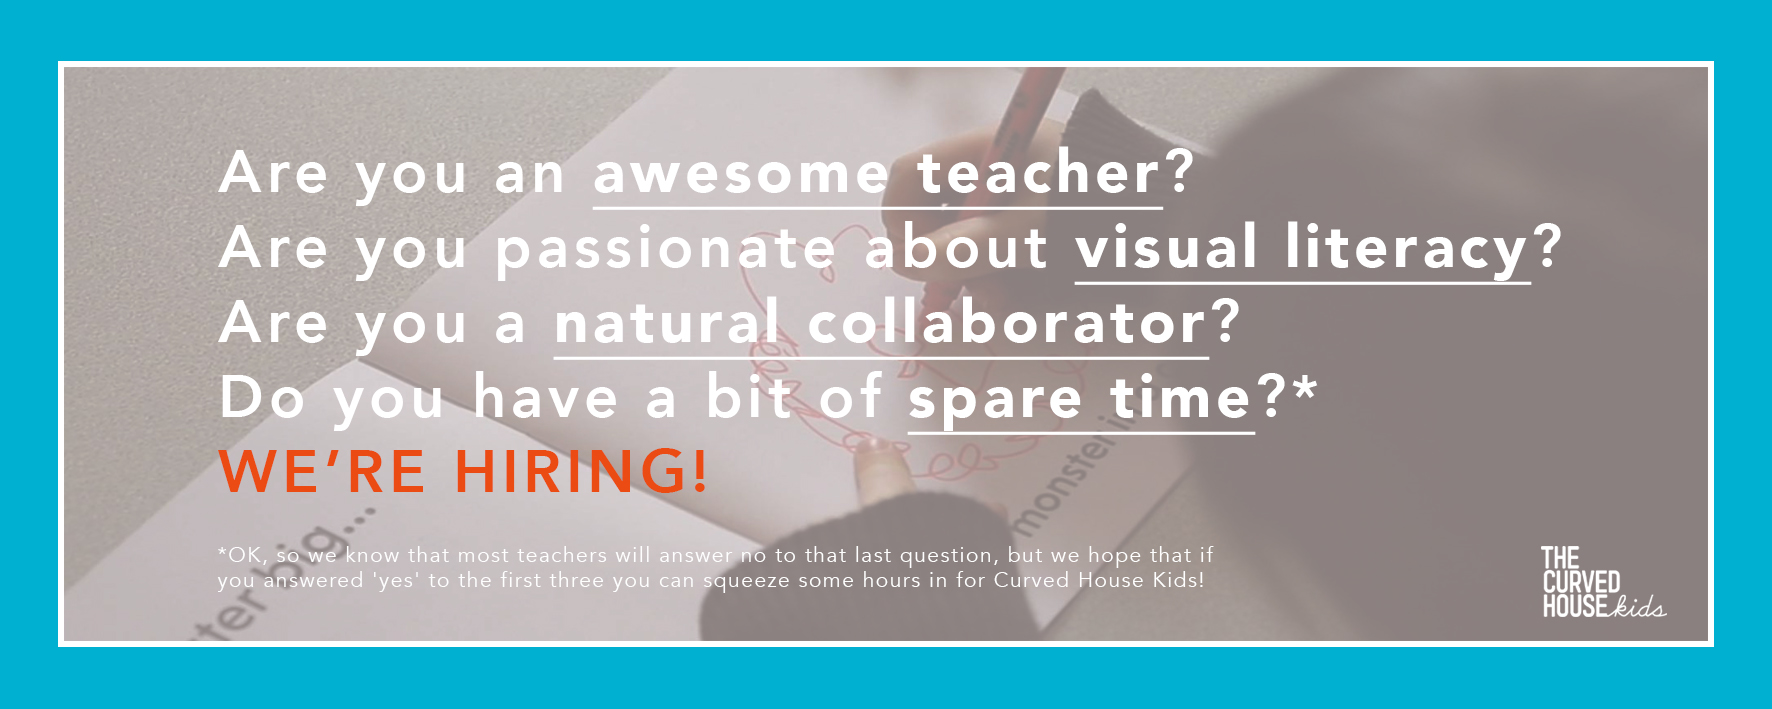 Curved House Kids are hiring enthusiastic teachers!